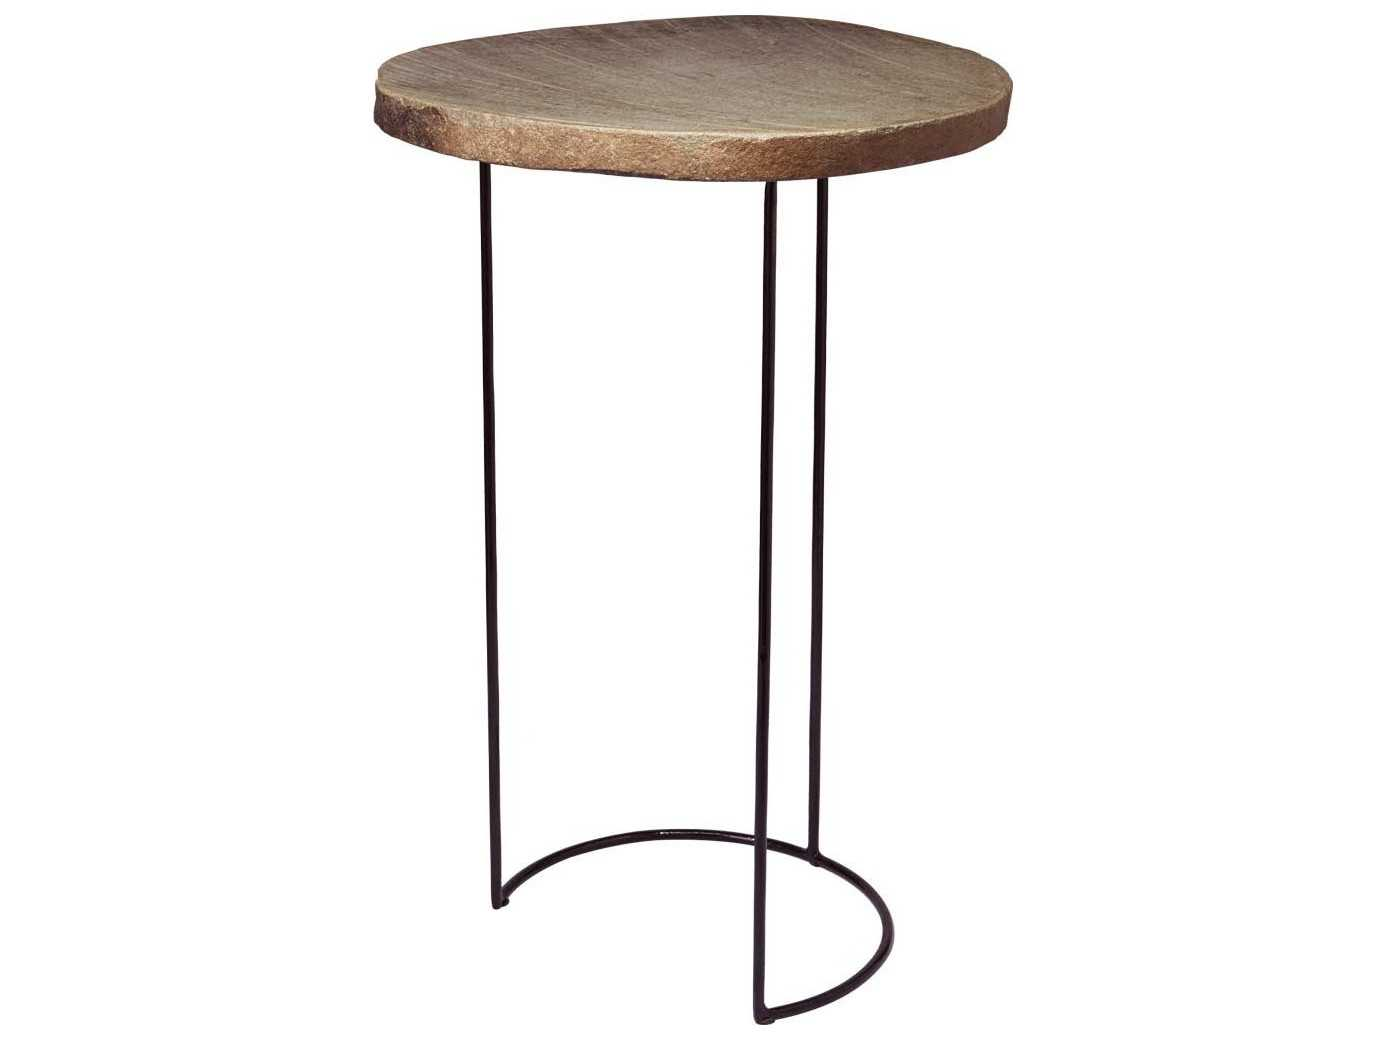 Dimond home 17 x 15 oval stone slab wire frame end table for 15 x 17 living room